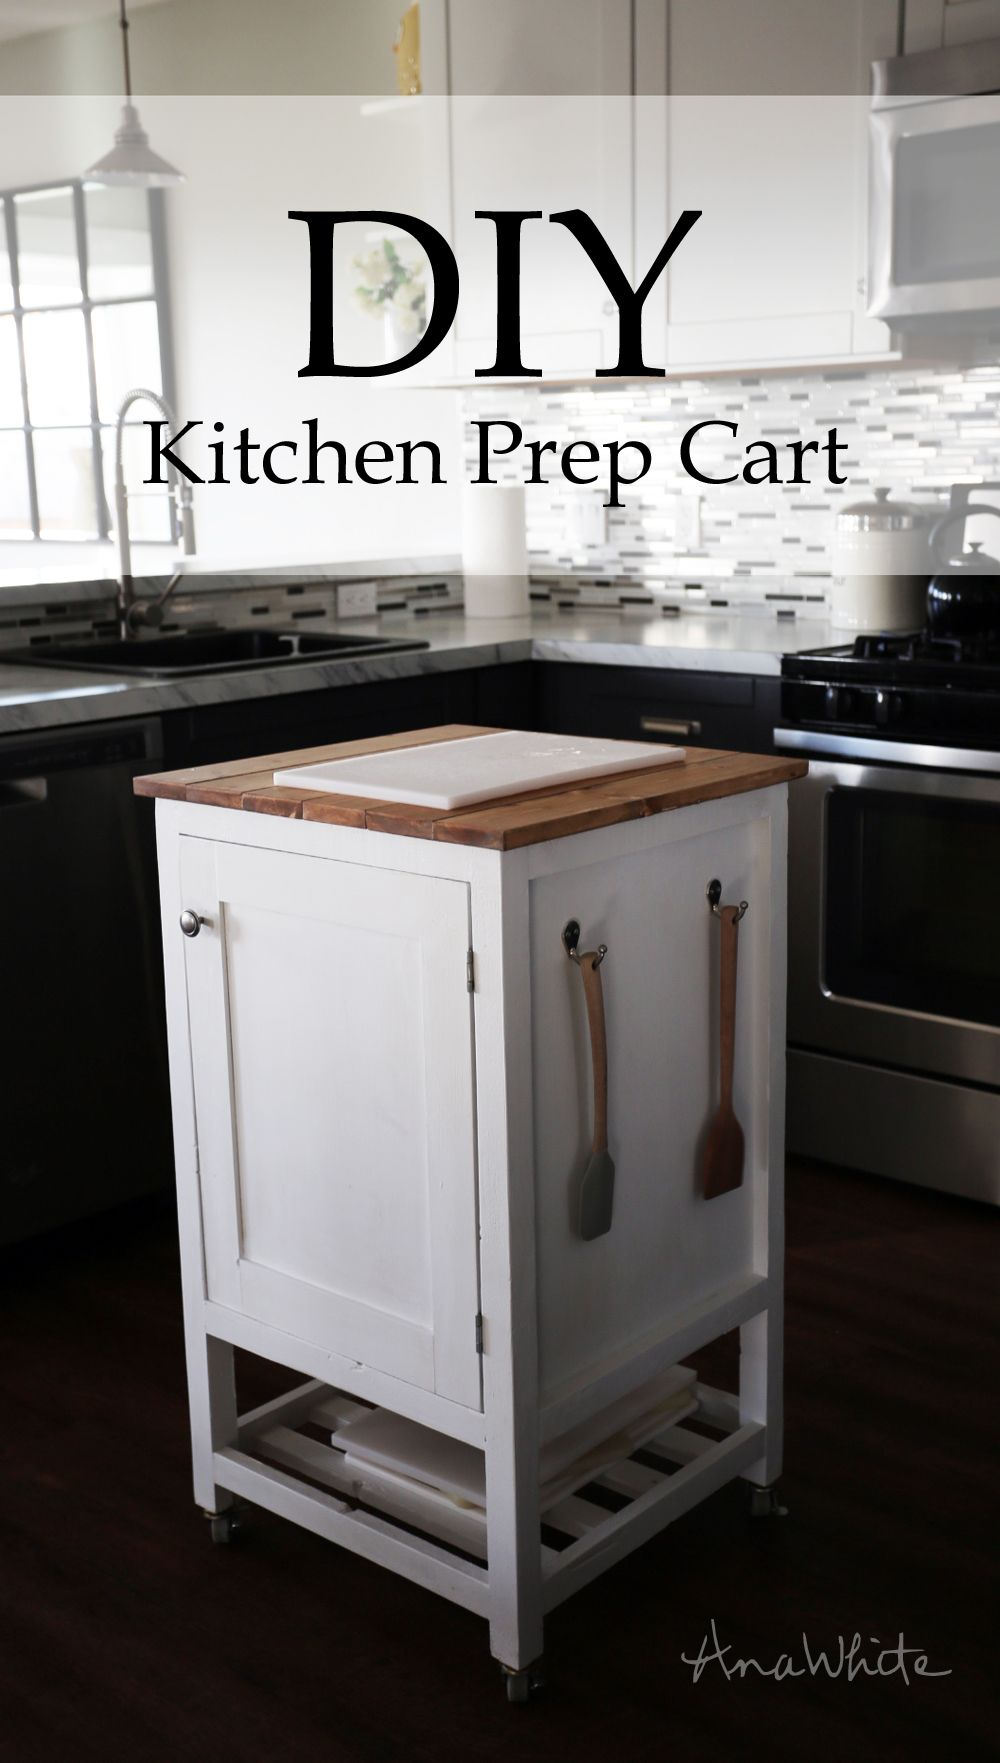 Kitchen Prep Cart Store Com Diy Island Project Tutorial Build Your Own Storage Using This Simple Plan